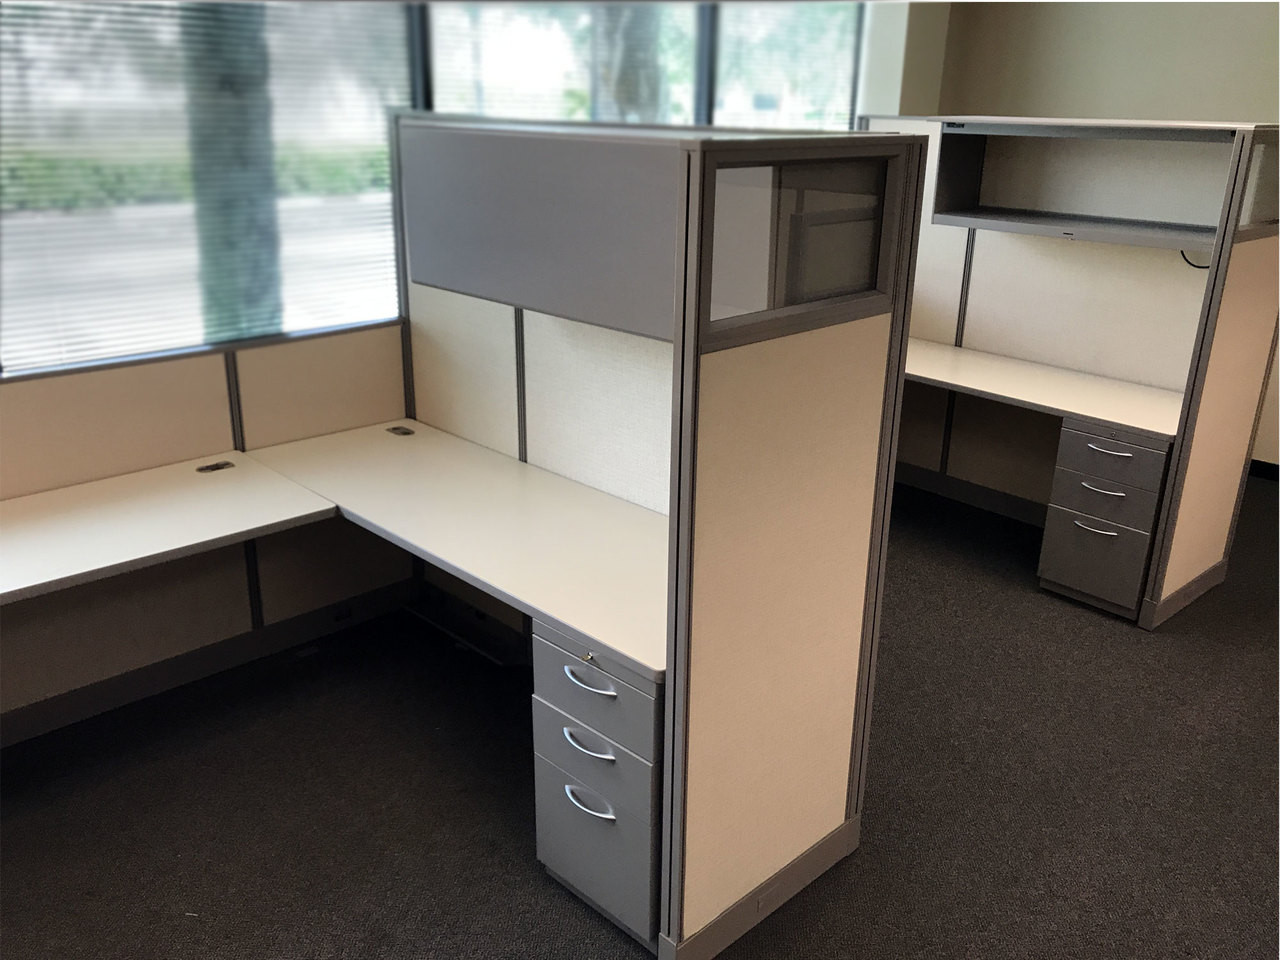 Po Sys 0002 Hon Cubicles 8 X 6 Office Furniture Warehouse